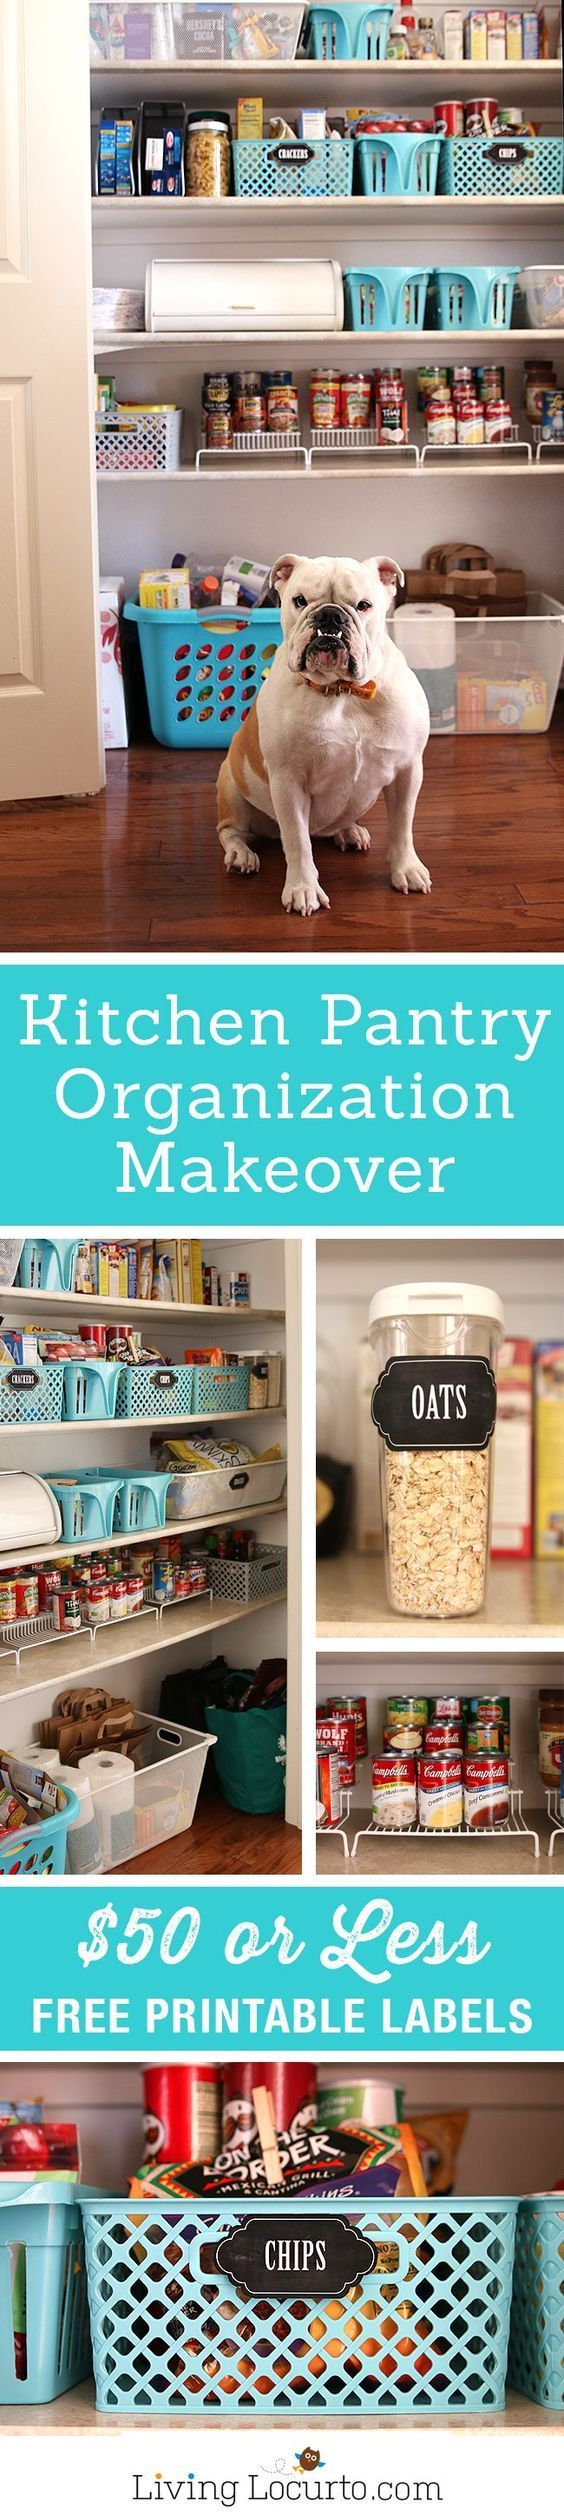 Makeover your kitchen pantry with $50 or less! Inspiring kitchen ...